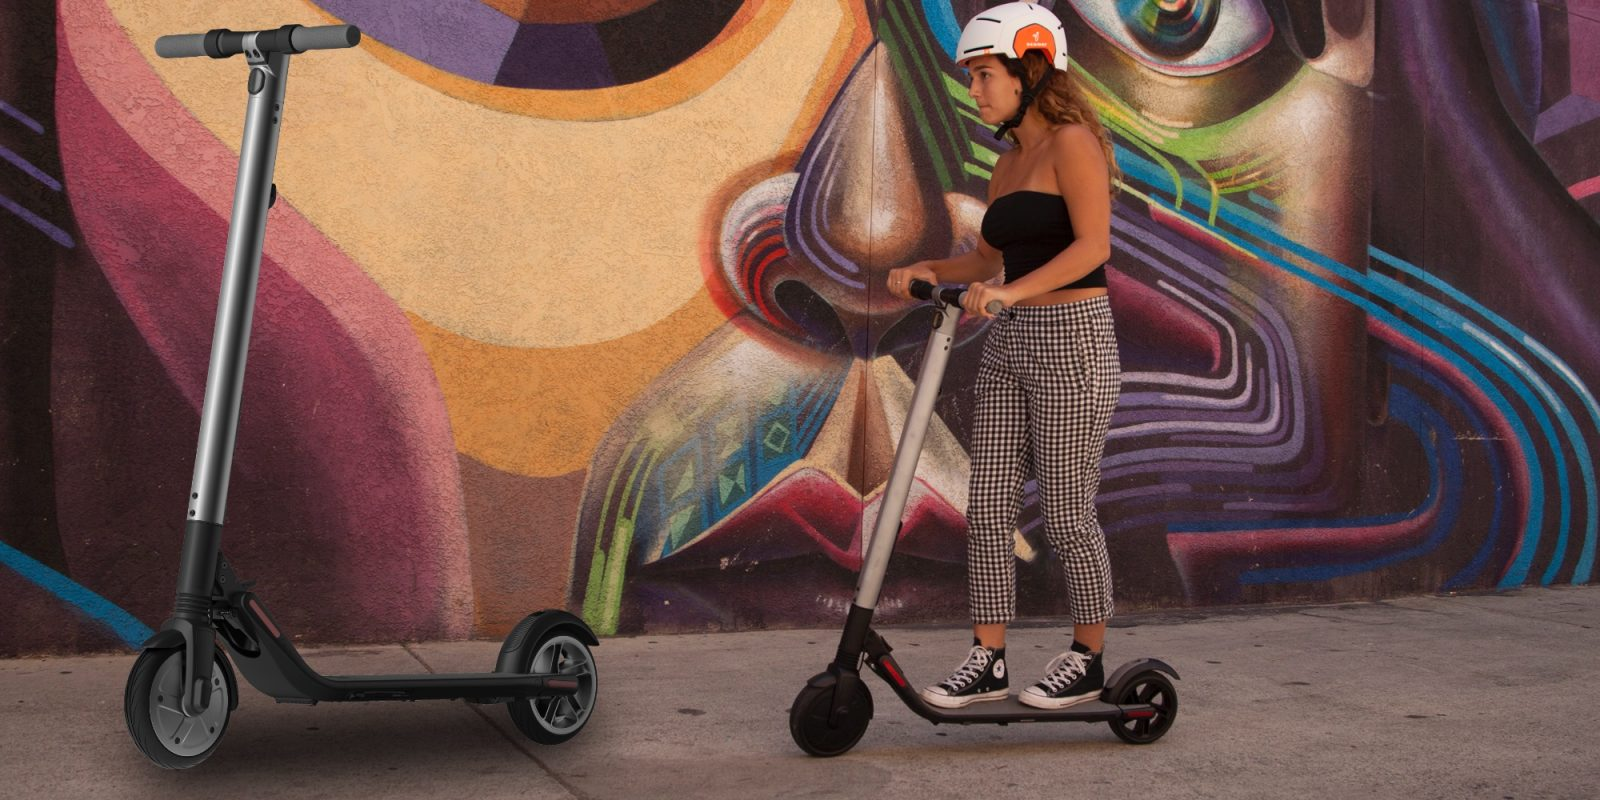 Prime Day takes up to 30% off Segway or Razor electric scooters, more from $80